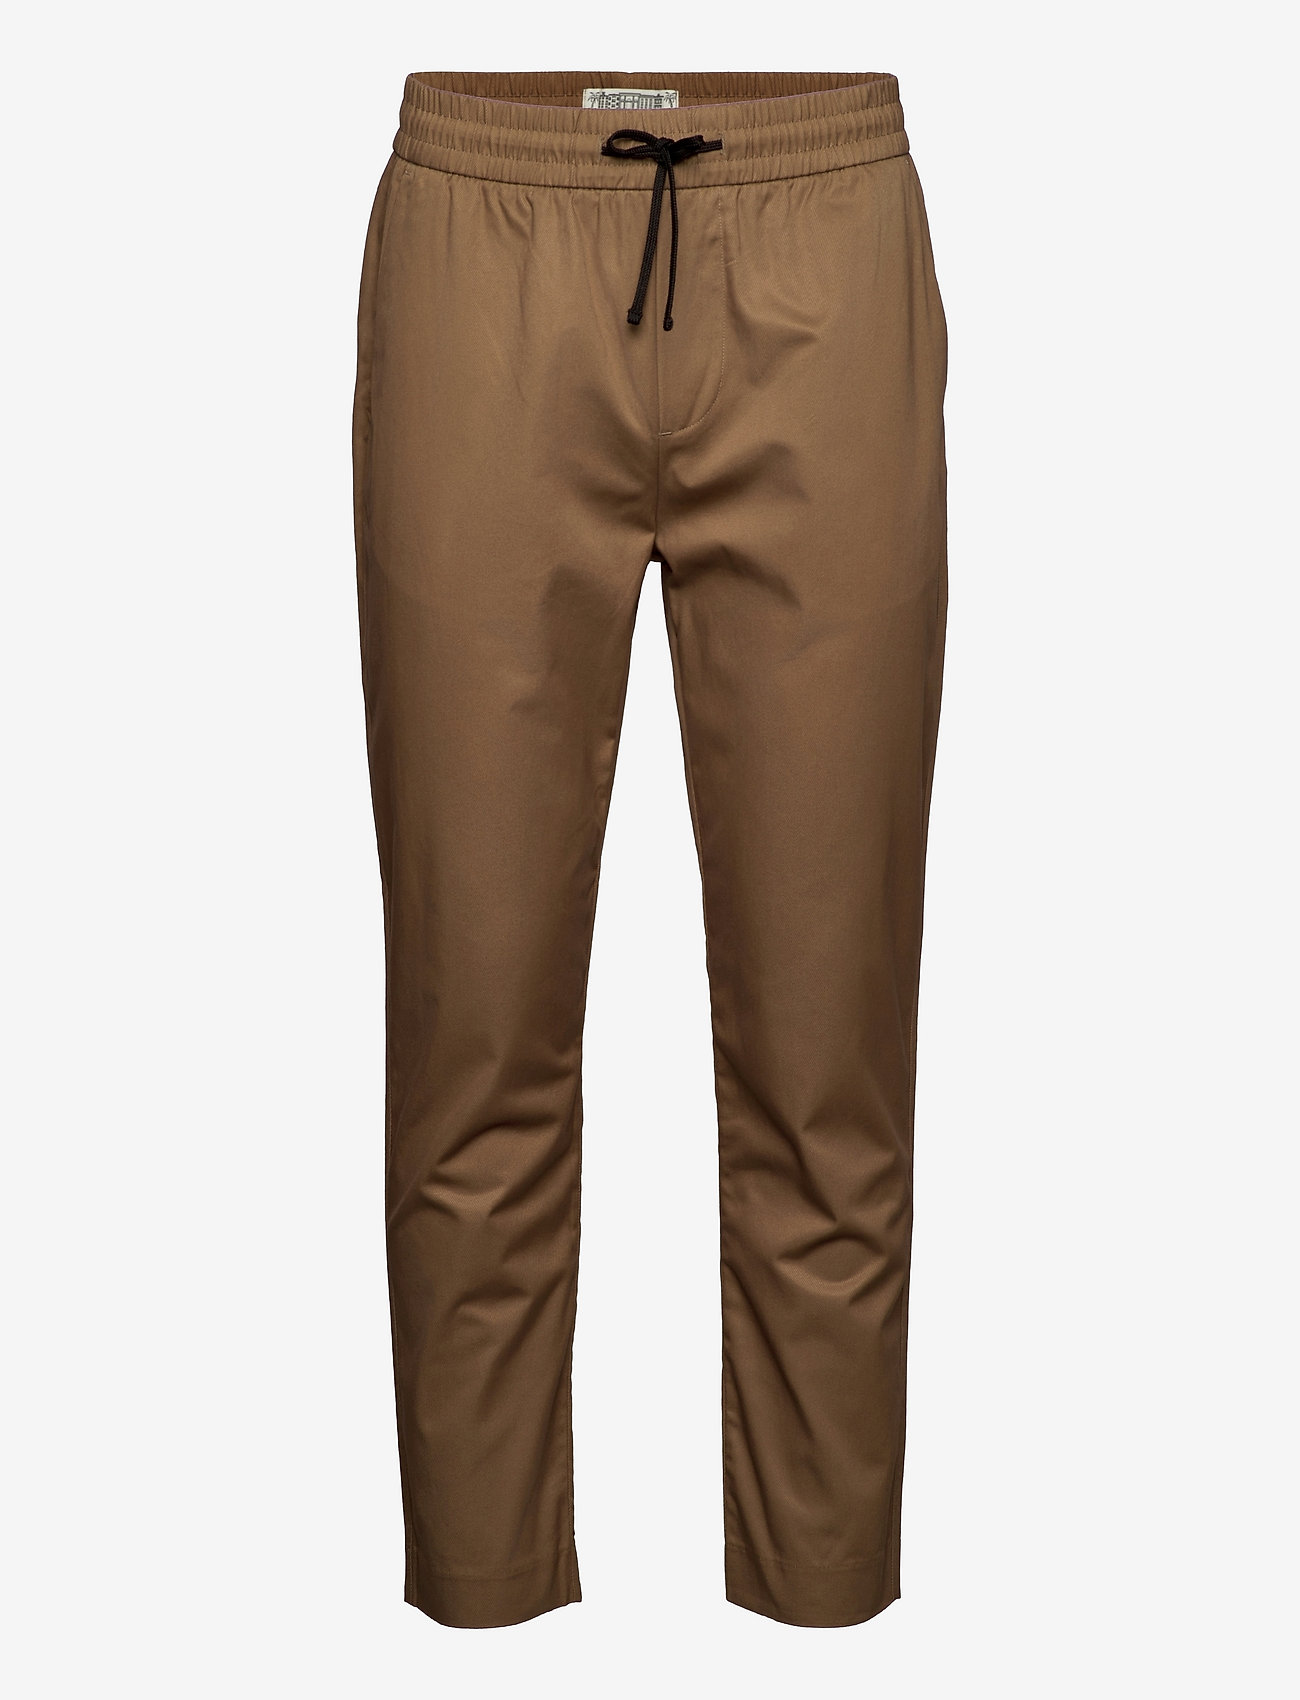 Scotch & Soda - FAVE- Lightweight chino in jogger styling in organic cotton - chino's - sand - 0